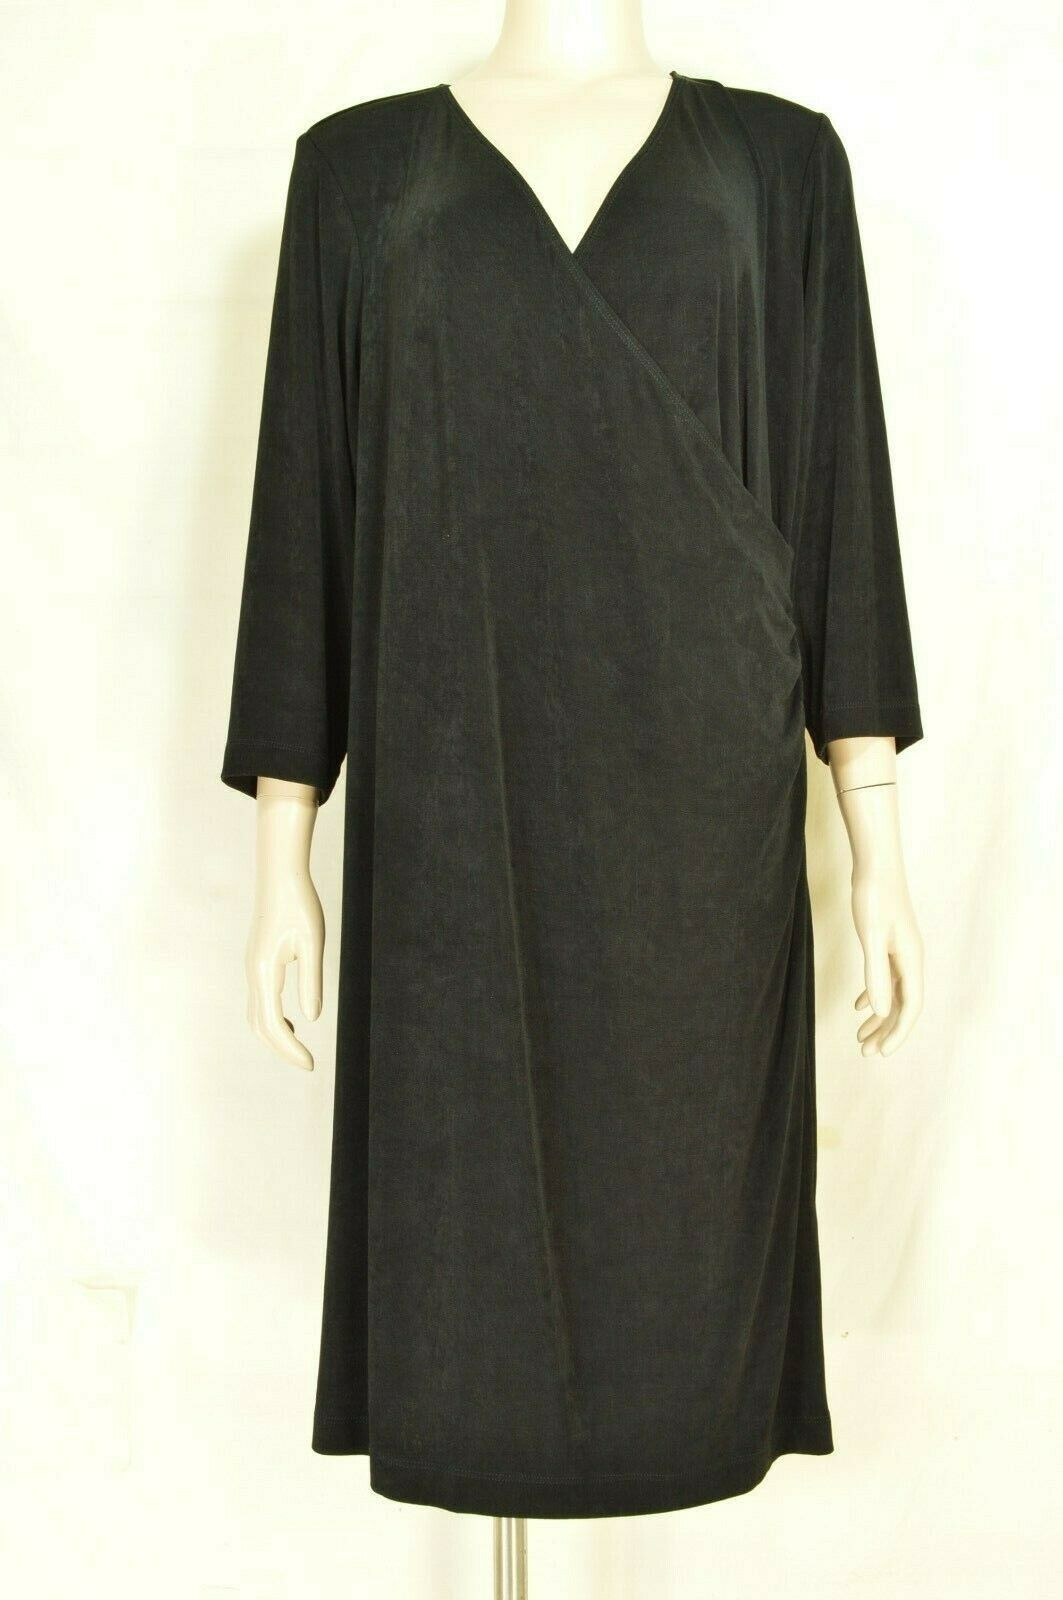 Primary image for Chico's dress Travelers SZ 2 black LBD faux wrap dress up or down